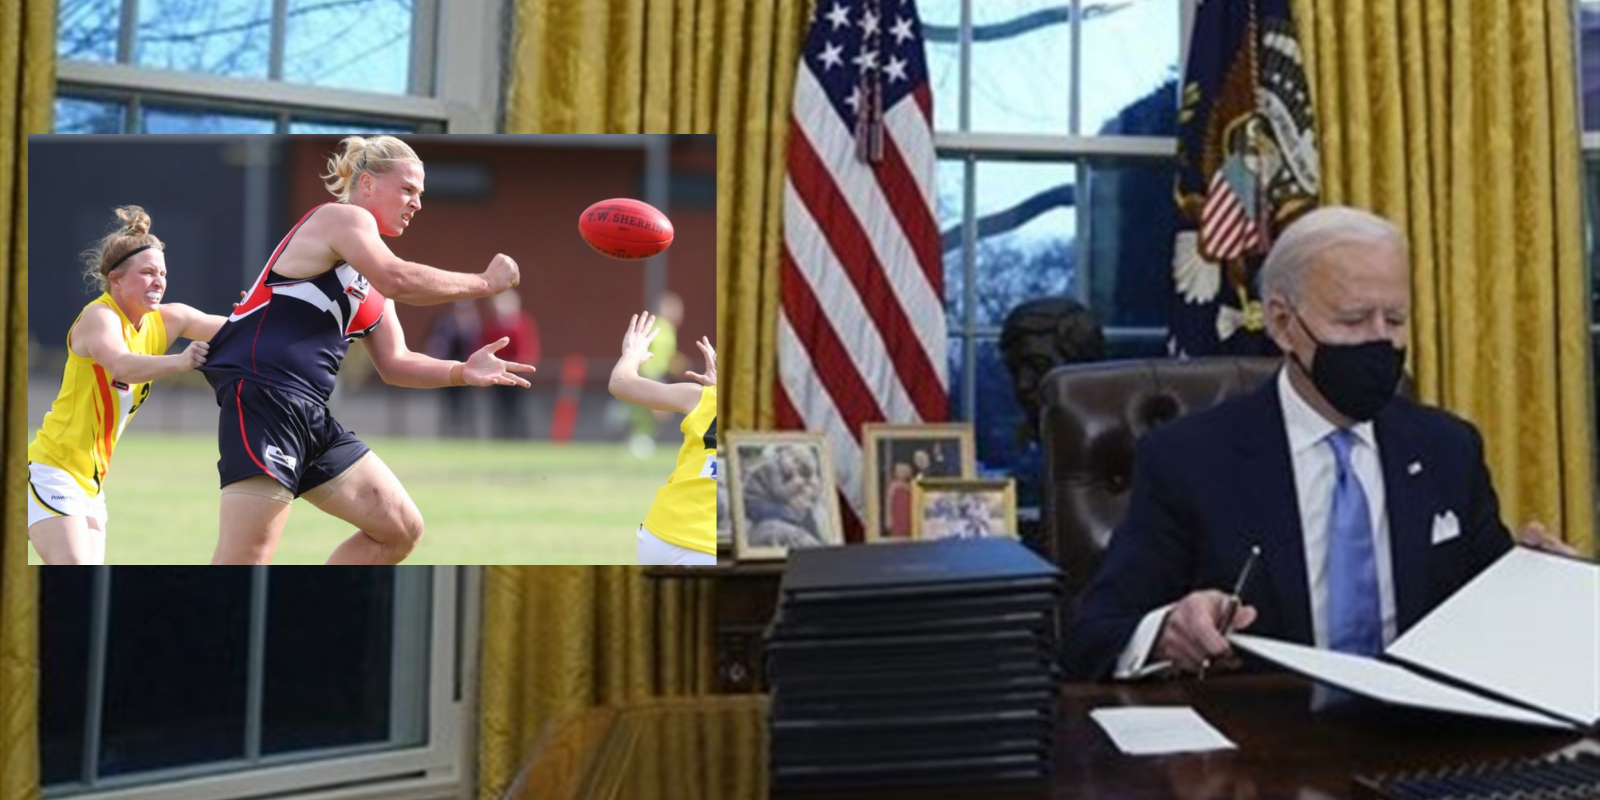 Biden's executive order allowing biological males to compete in female sports is an attempt to appease the far-left at the cost of women's rights